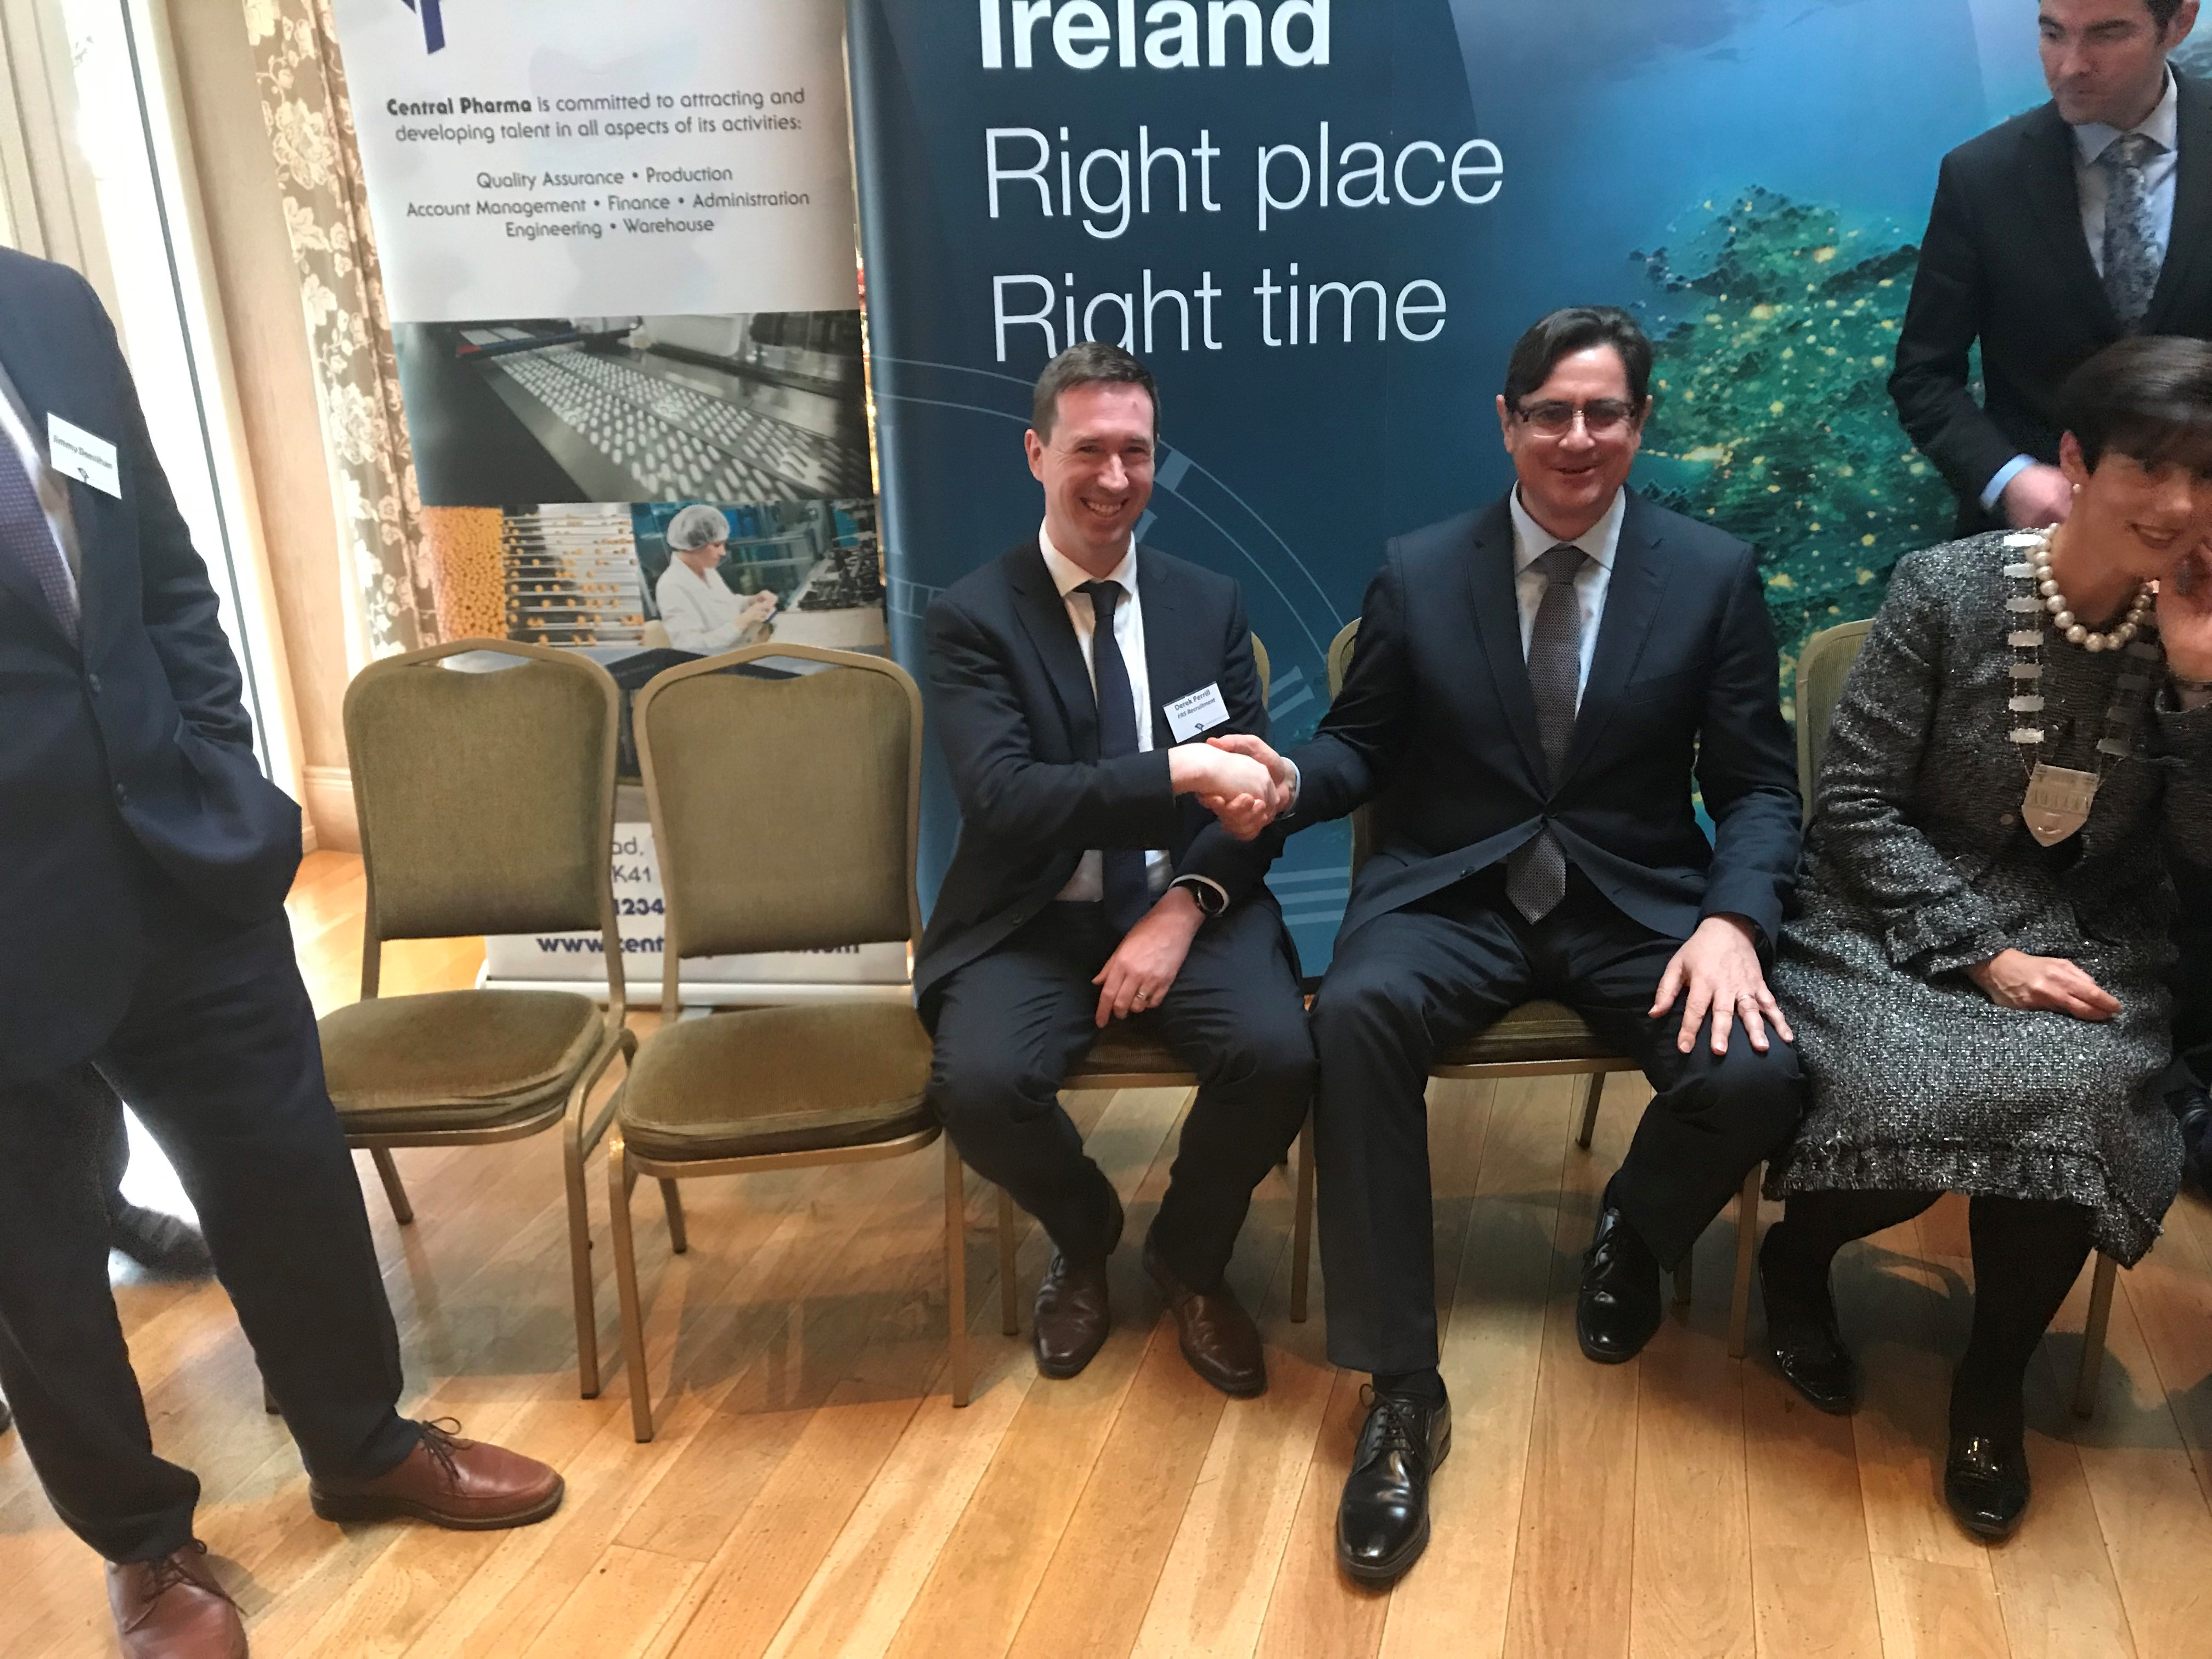 100 new jobs created in Tralee Kerry